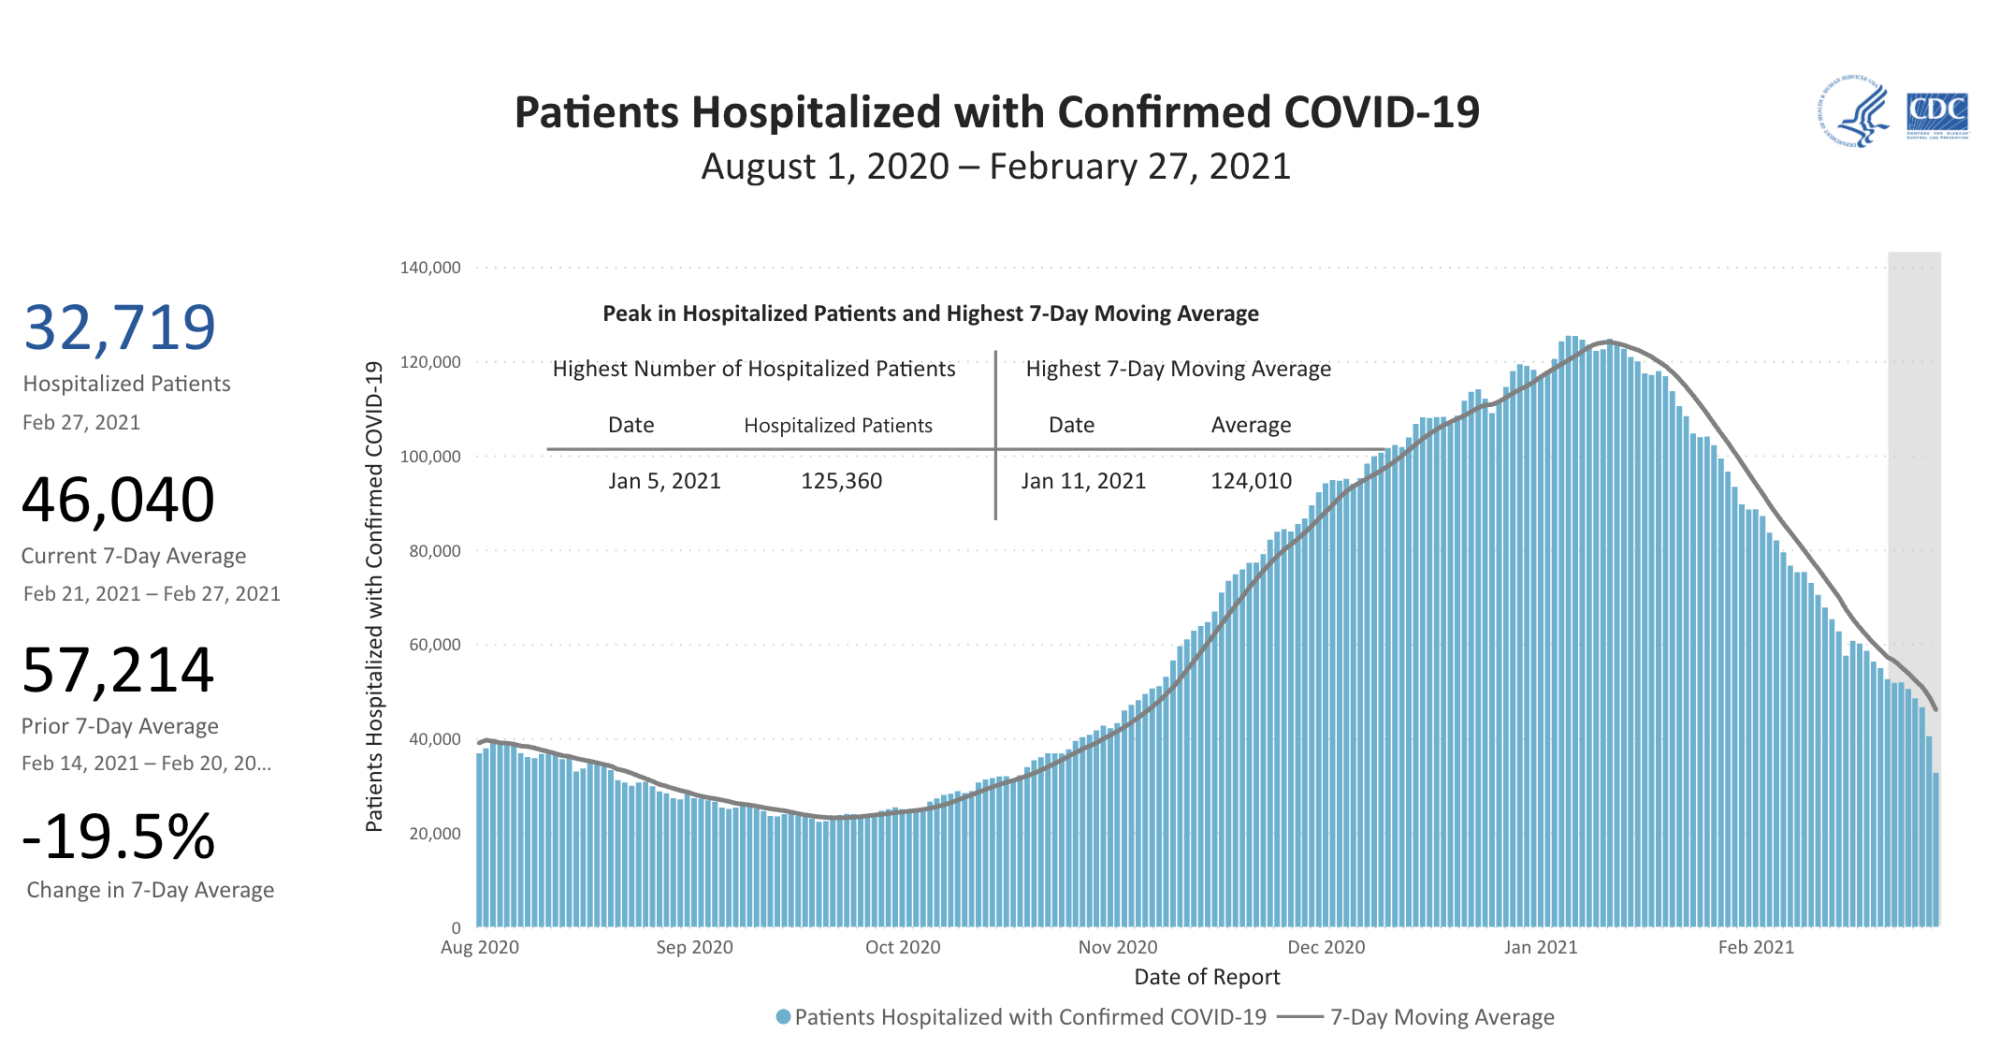 CDC Covid Data Tracker chart of Patients Hospitalized with Confirmed COVID-19 showing data for August 1, 2020 through February 27, 2021. The graph begins at about 40,000, dips to about 30,000 in fall 2020, rises to a peak of about 120,000 in early 2021, then drops sharply to end at a 7-day average of 46,040 by the end of February 2021.